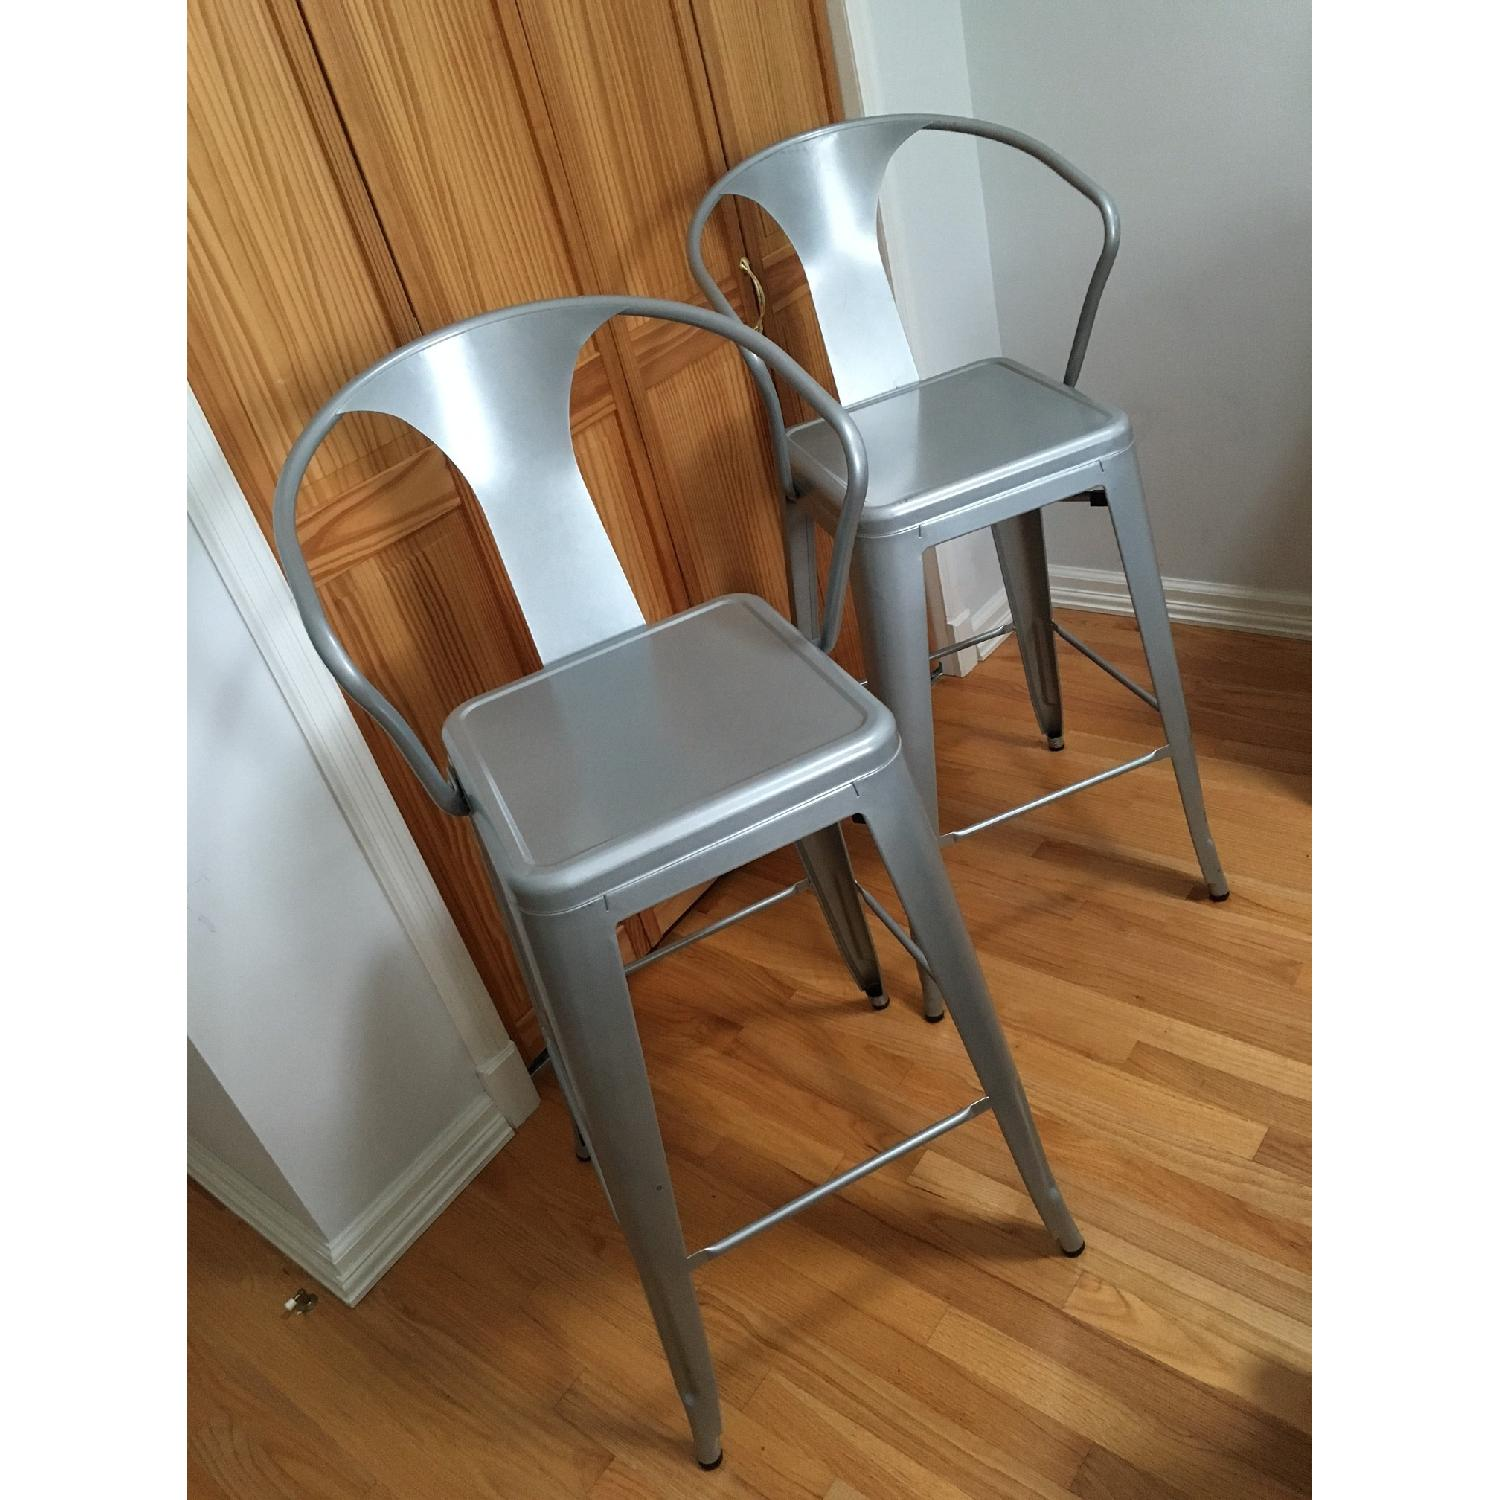 Silver Metal Bar Stools w/ Backrest-0